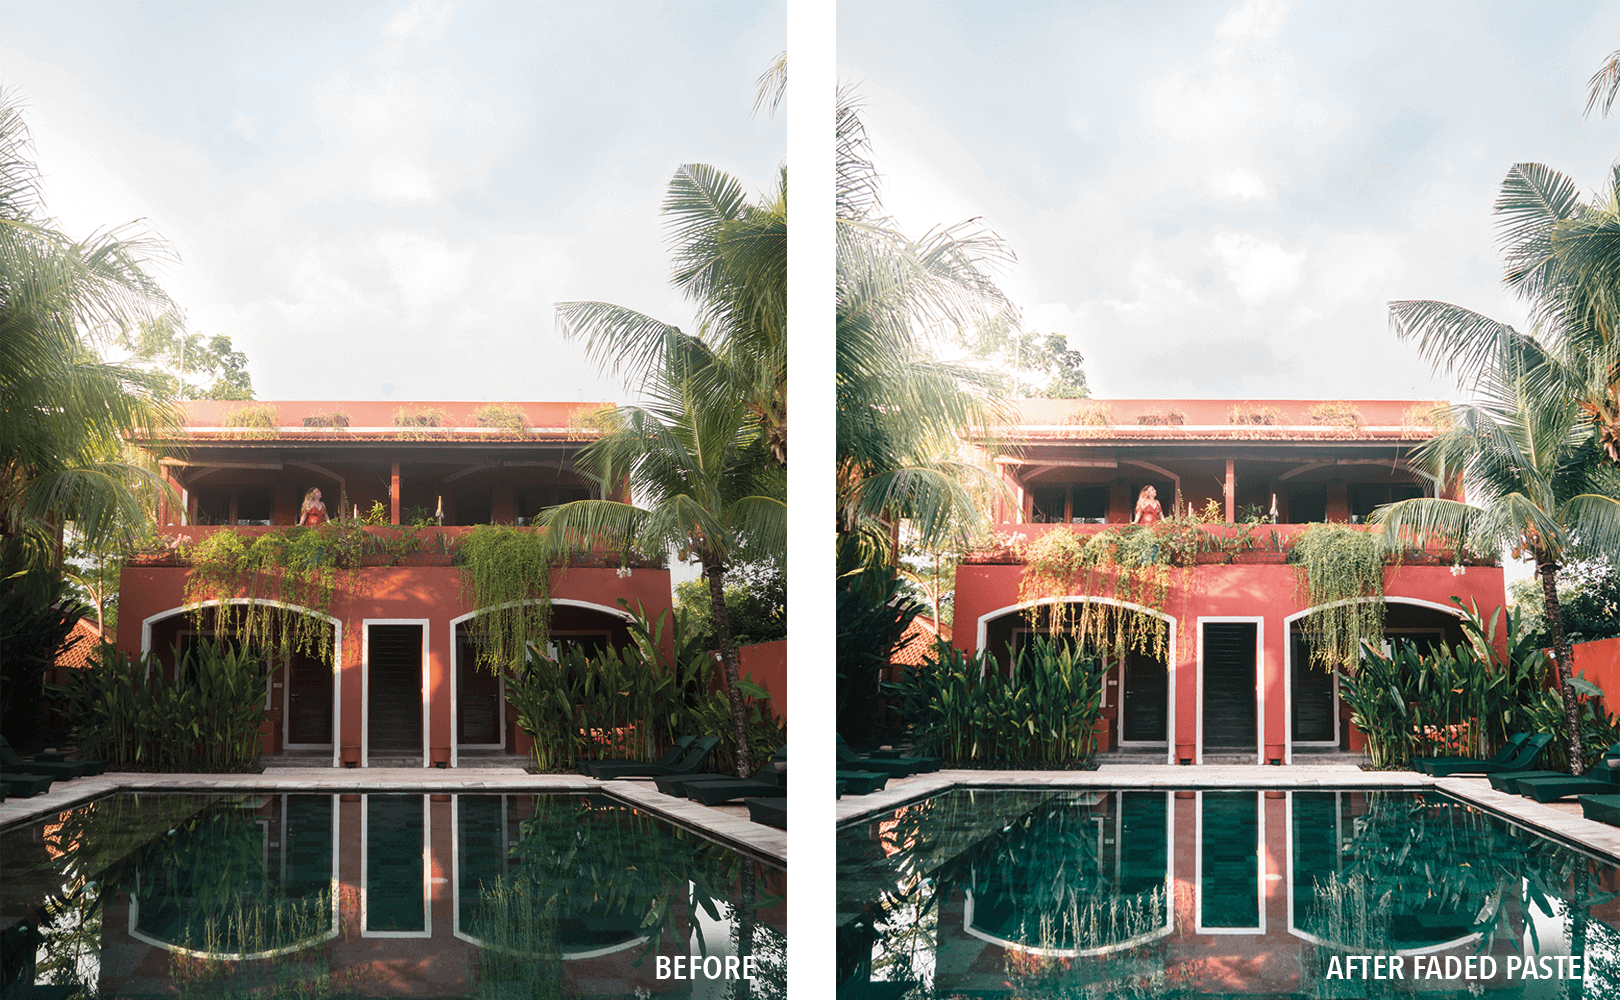 How to edit you travel photos in Lightroom and give them that Instagram look